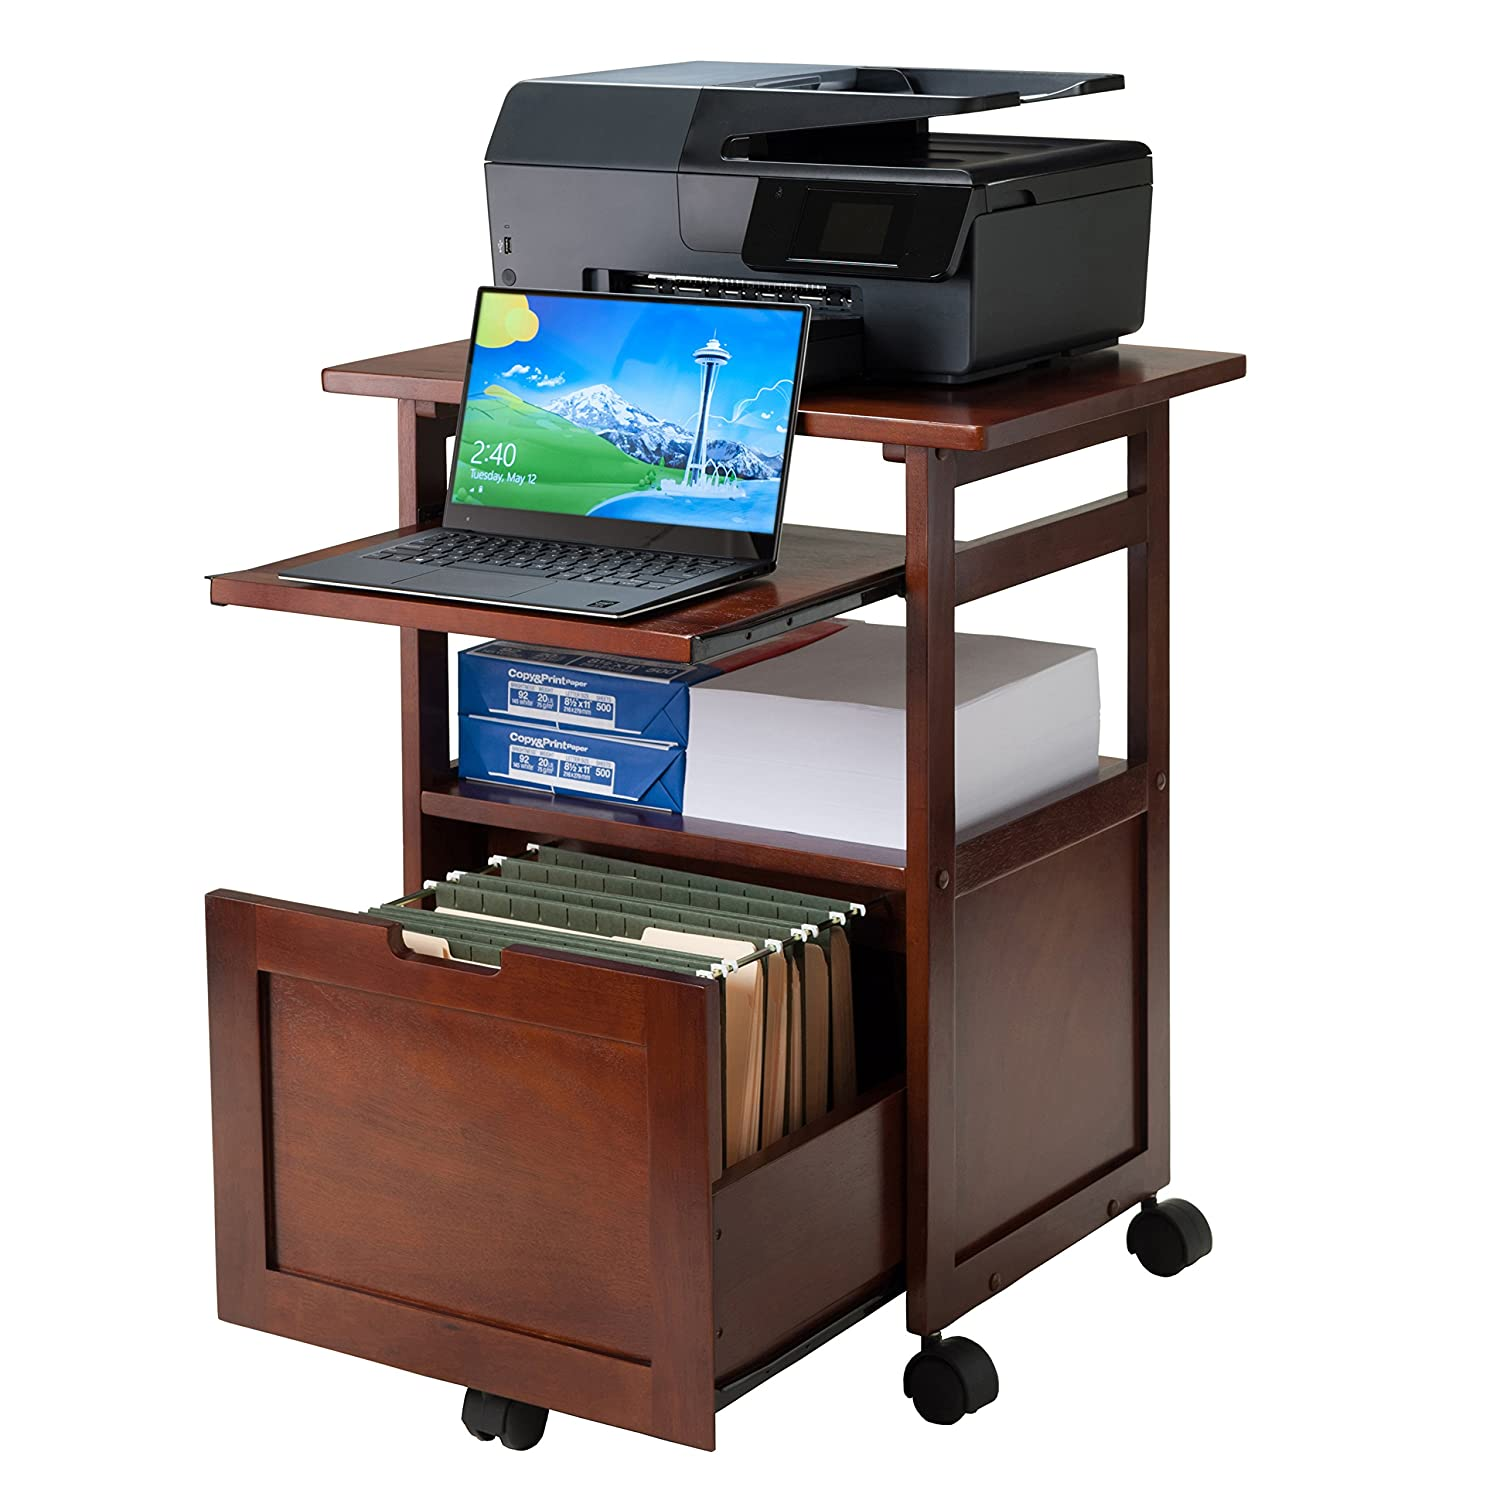 homeoffice opus modern occasional oak online furniture printer plus opupc cabinet oakhandles